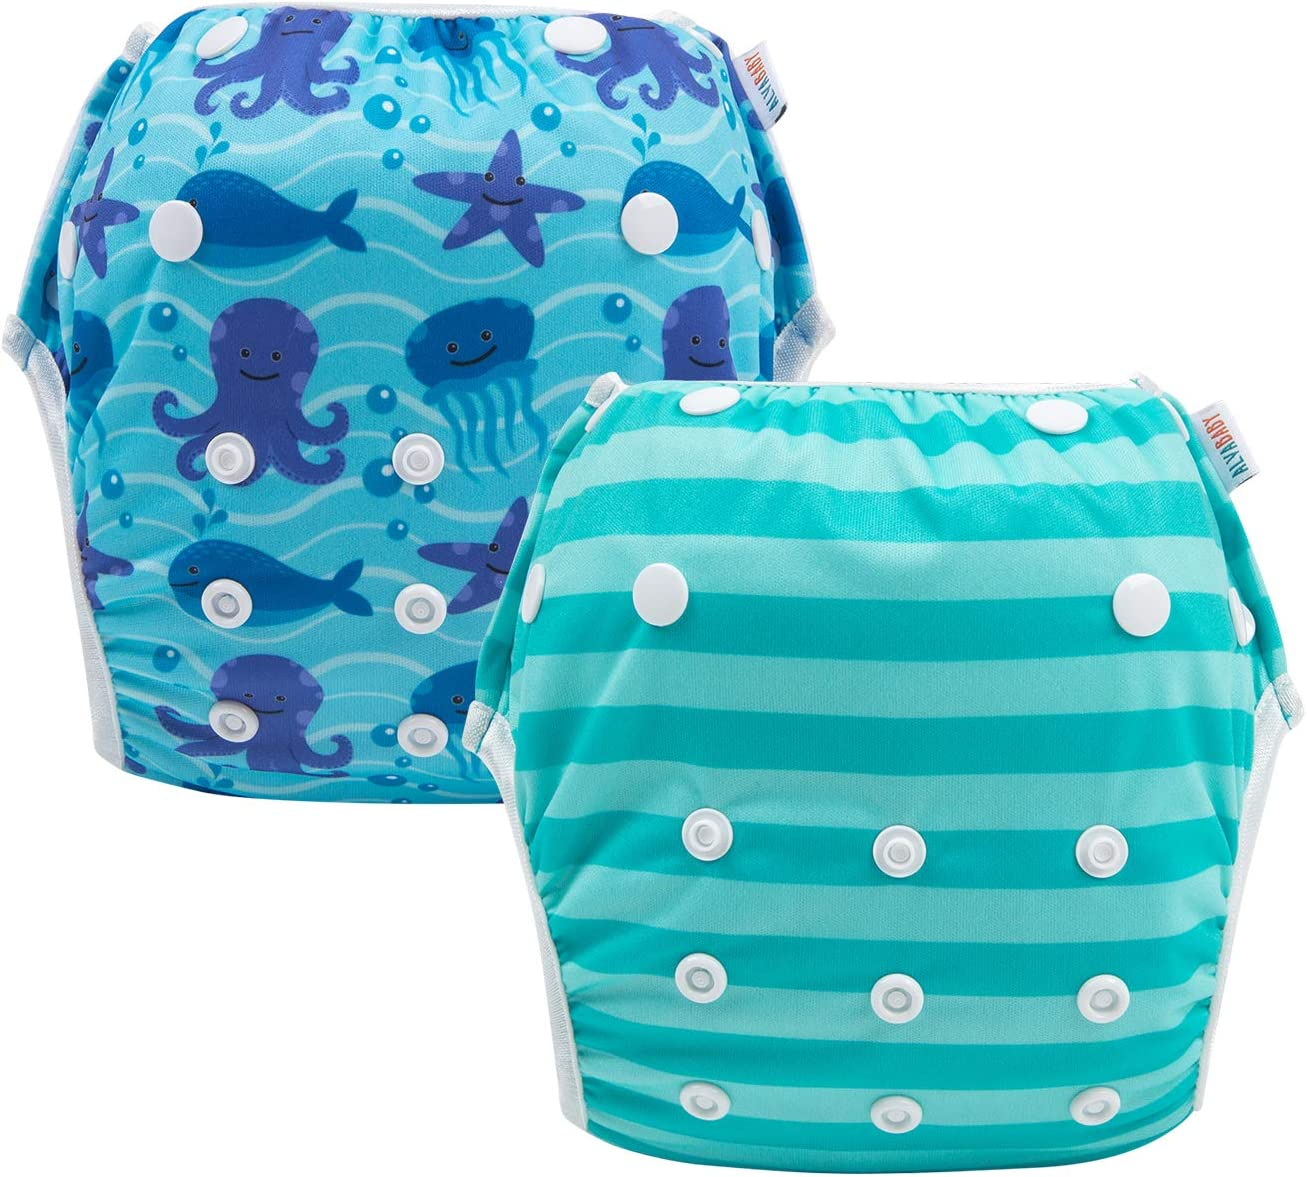 ALVABABY Swim Diapers Reuseable Washable Adjustable 2 PCS One Size DYK51-52-CA